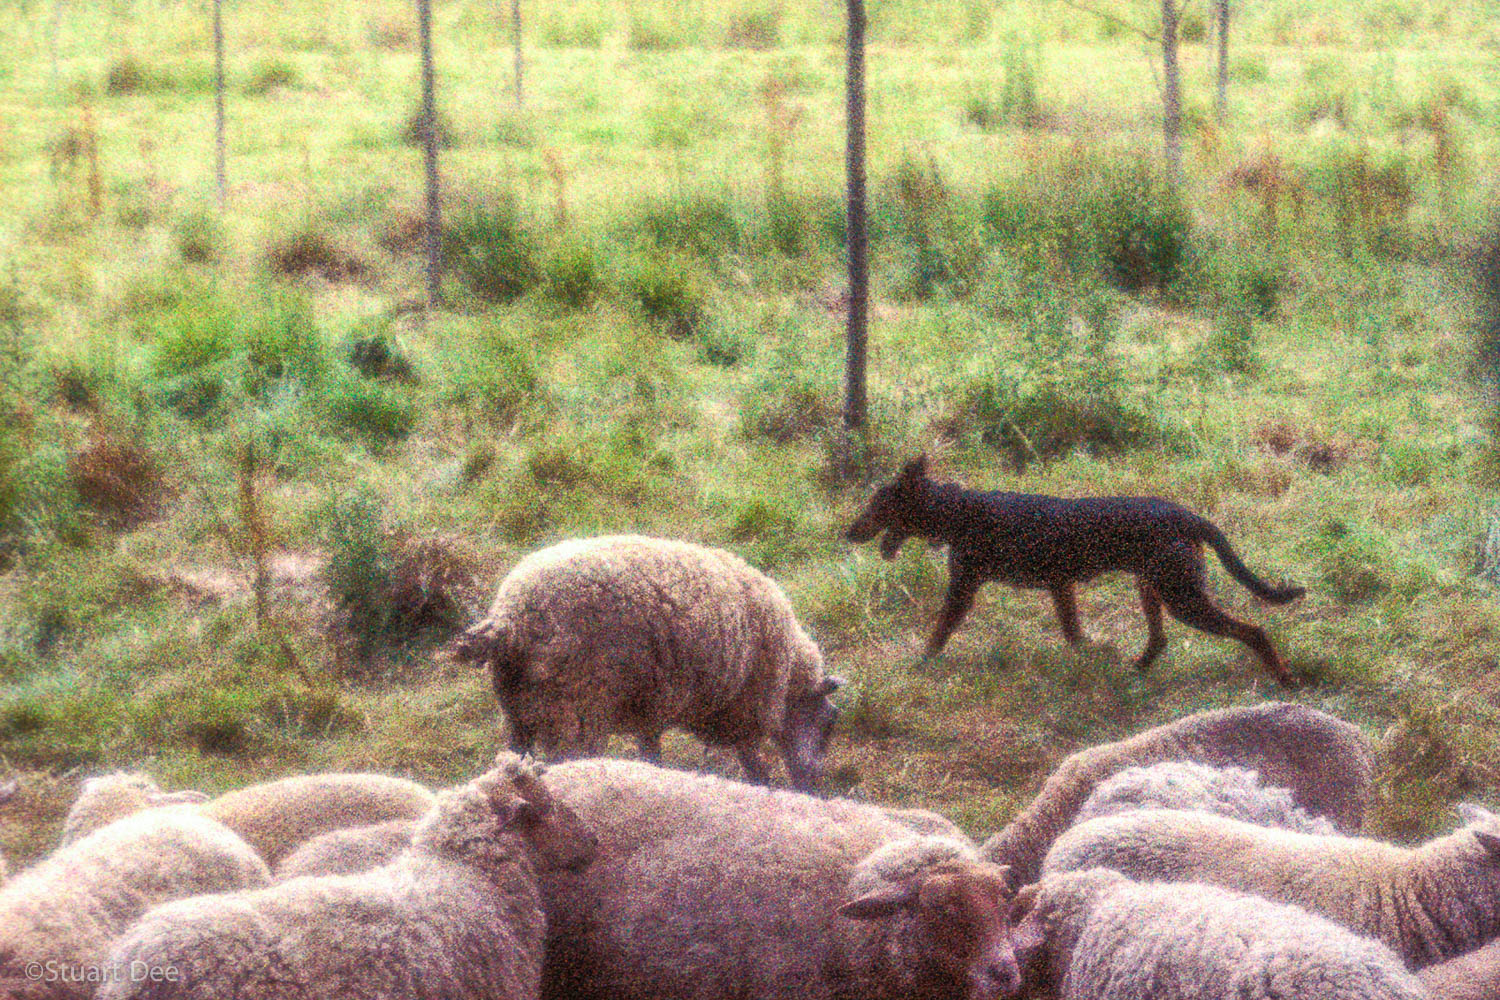 Sheep and Dog, Giverny, France